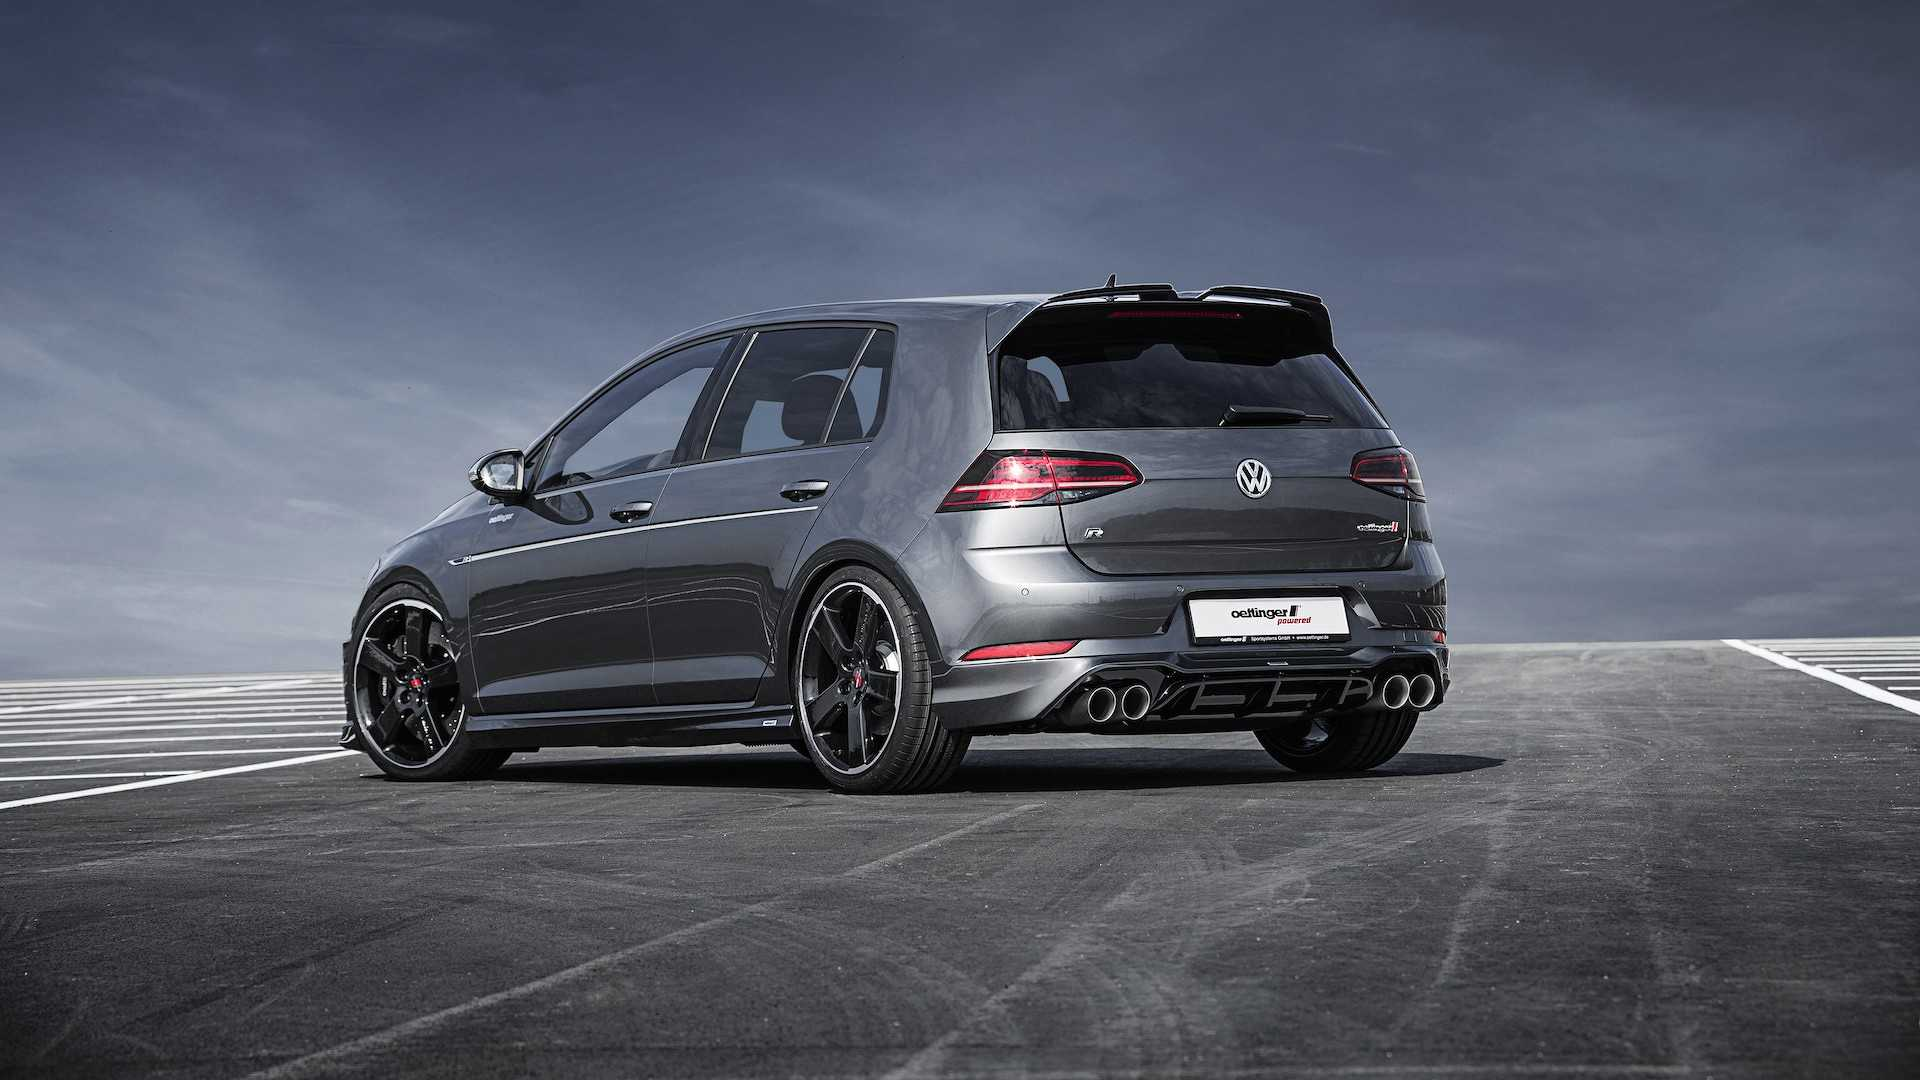 Oettinger_VW_GTI:Golf_R_03